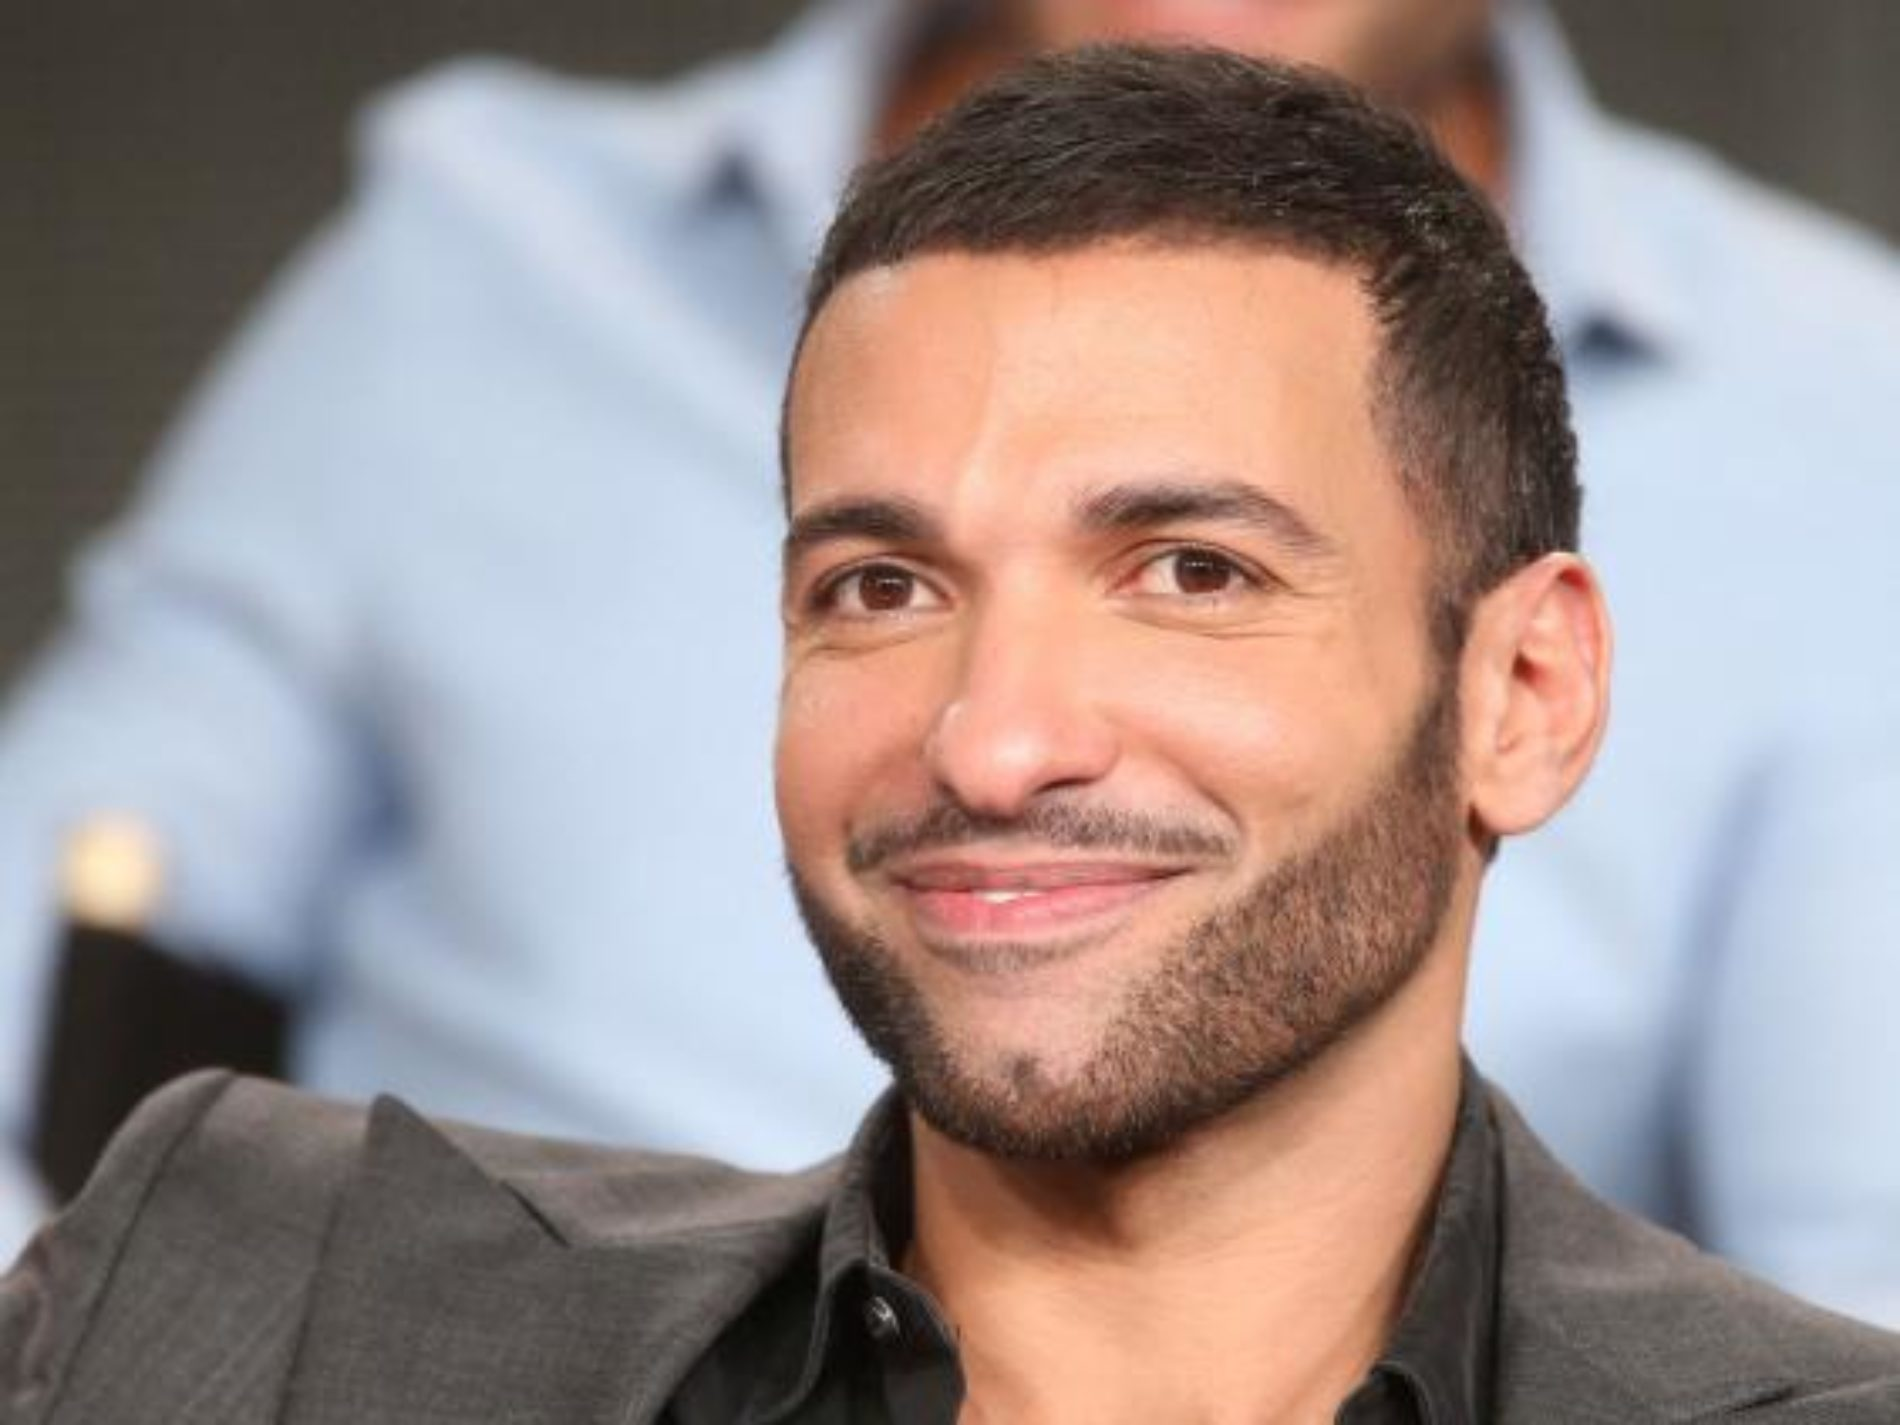 The Reporter Whose Interview Caused Haaz Sleiman To Lie About His Sexuality Responds